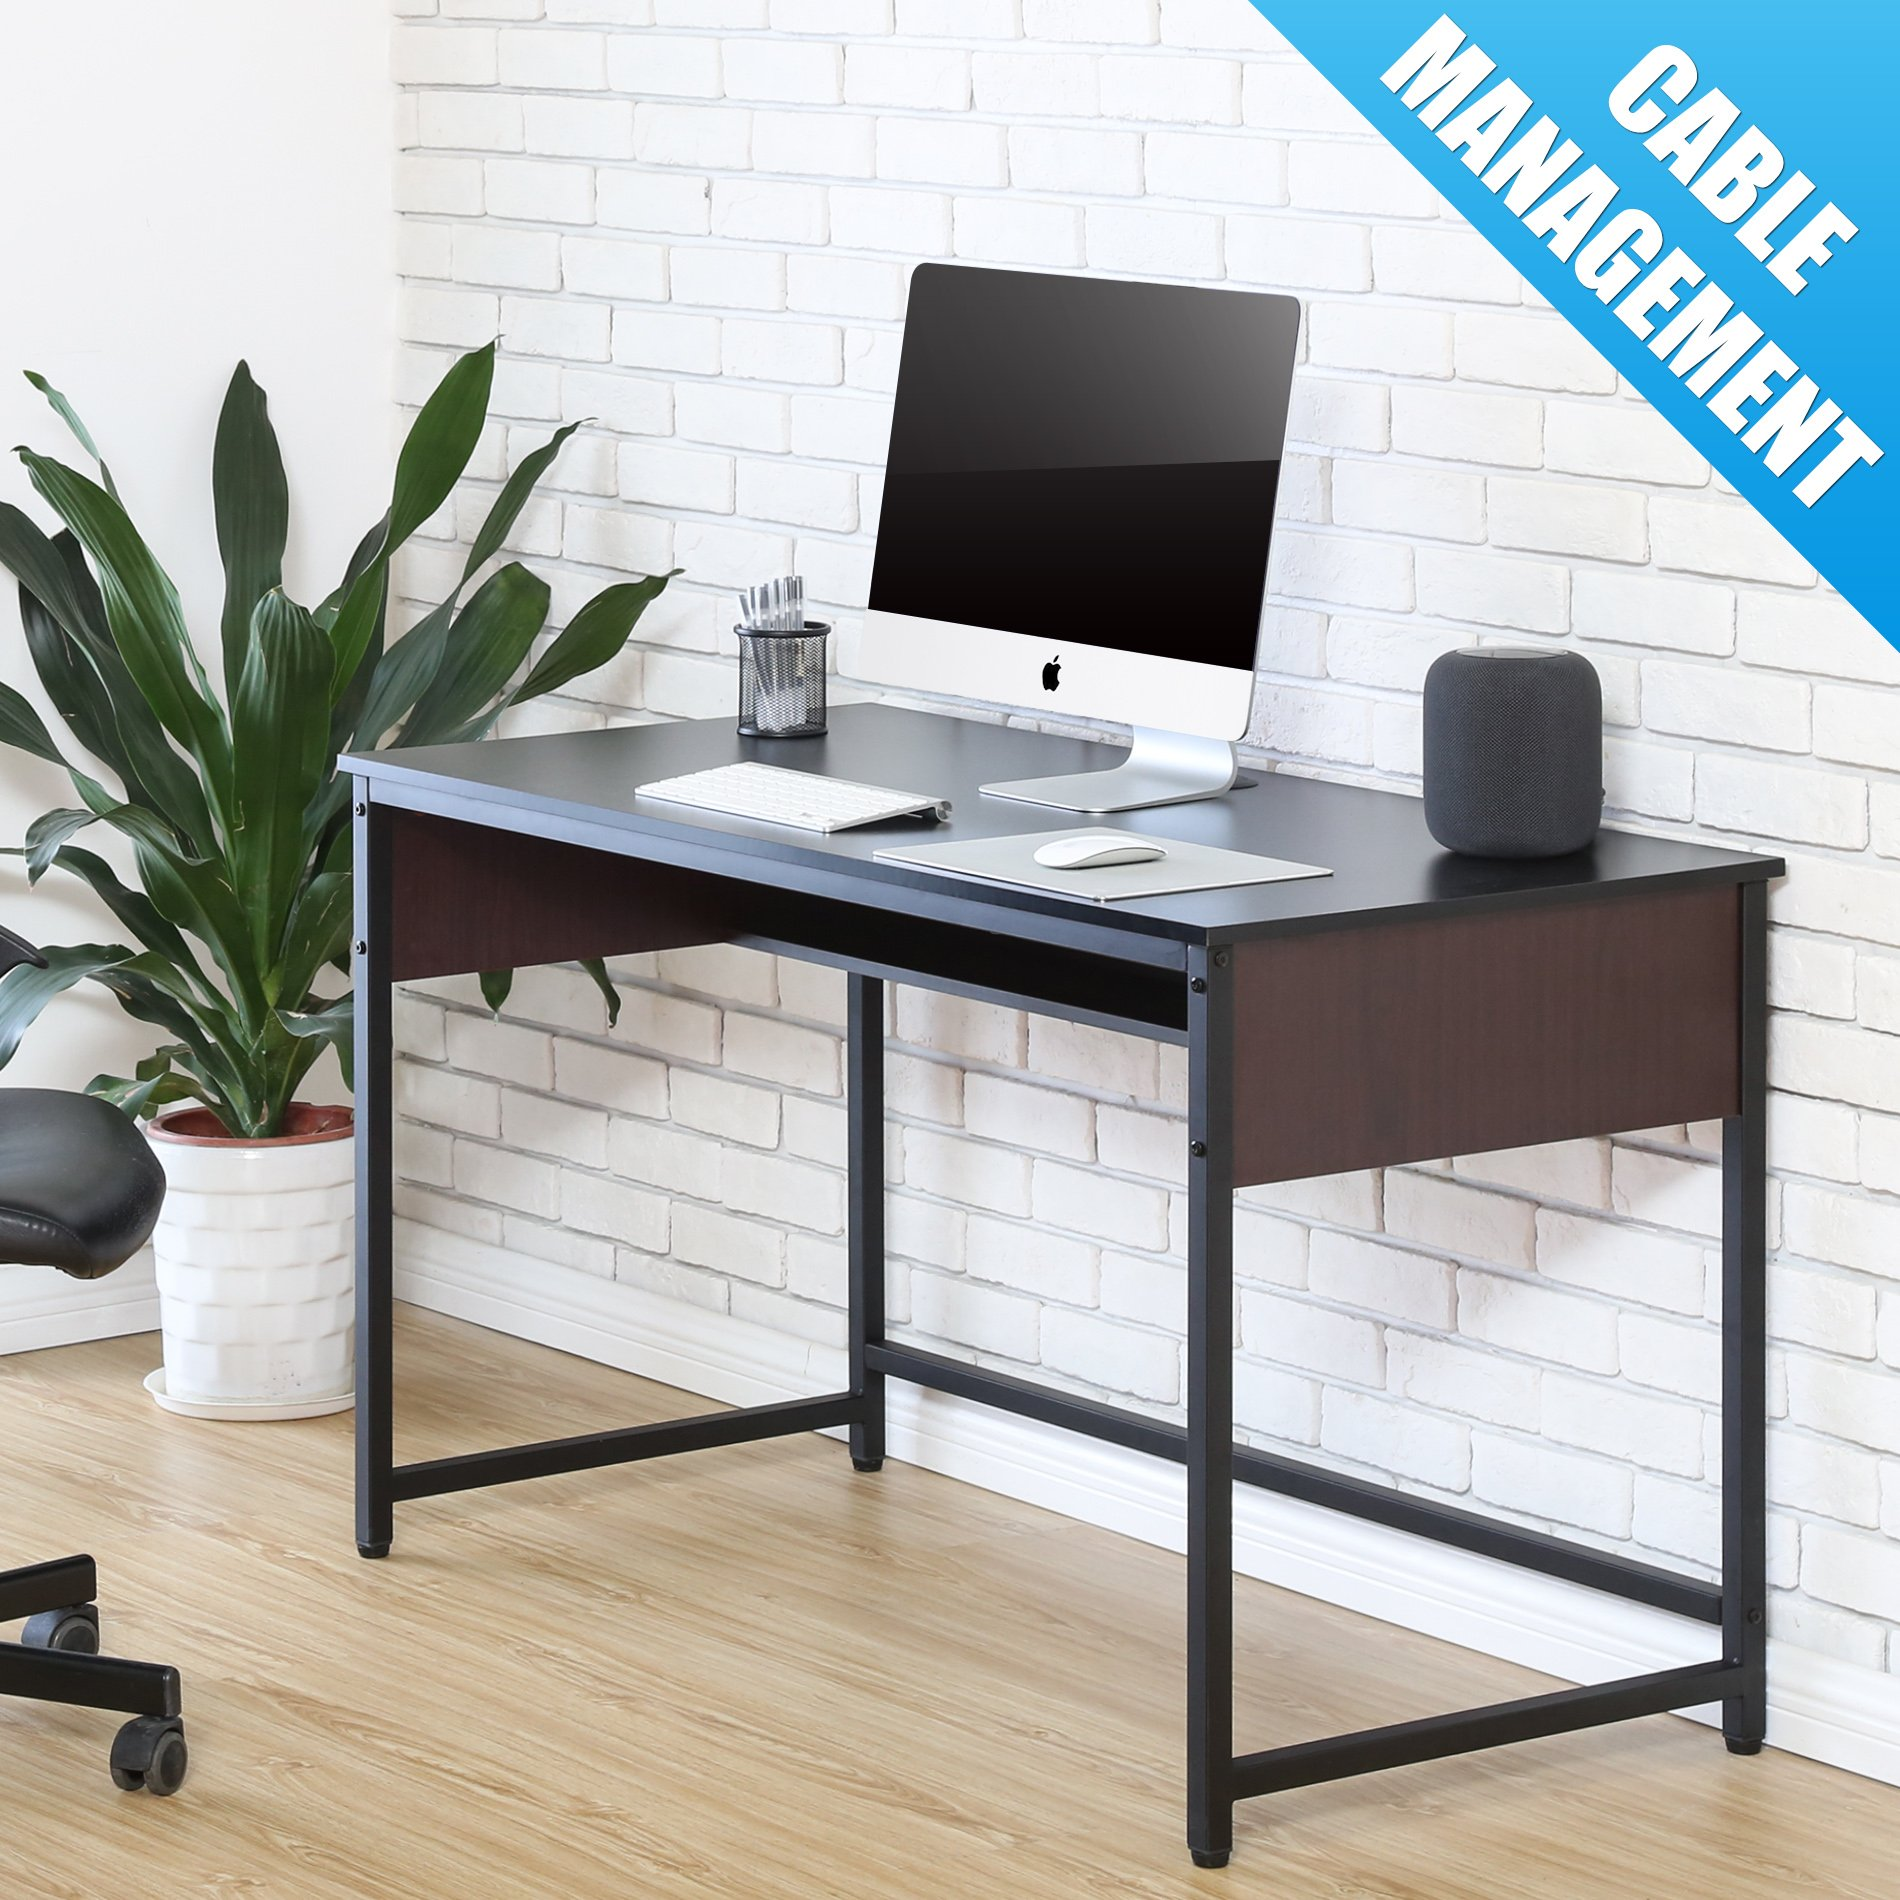 FITUEYES Computer Desk, Laptop Table,Large Office Desk Study Writing Desk for Home Office,CD212001WB